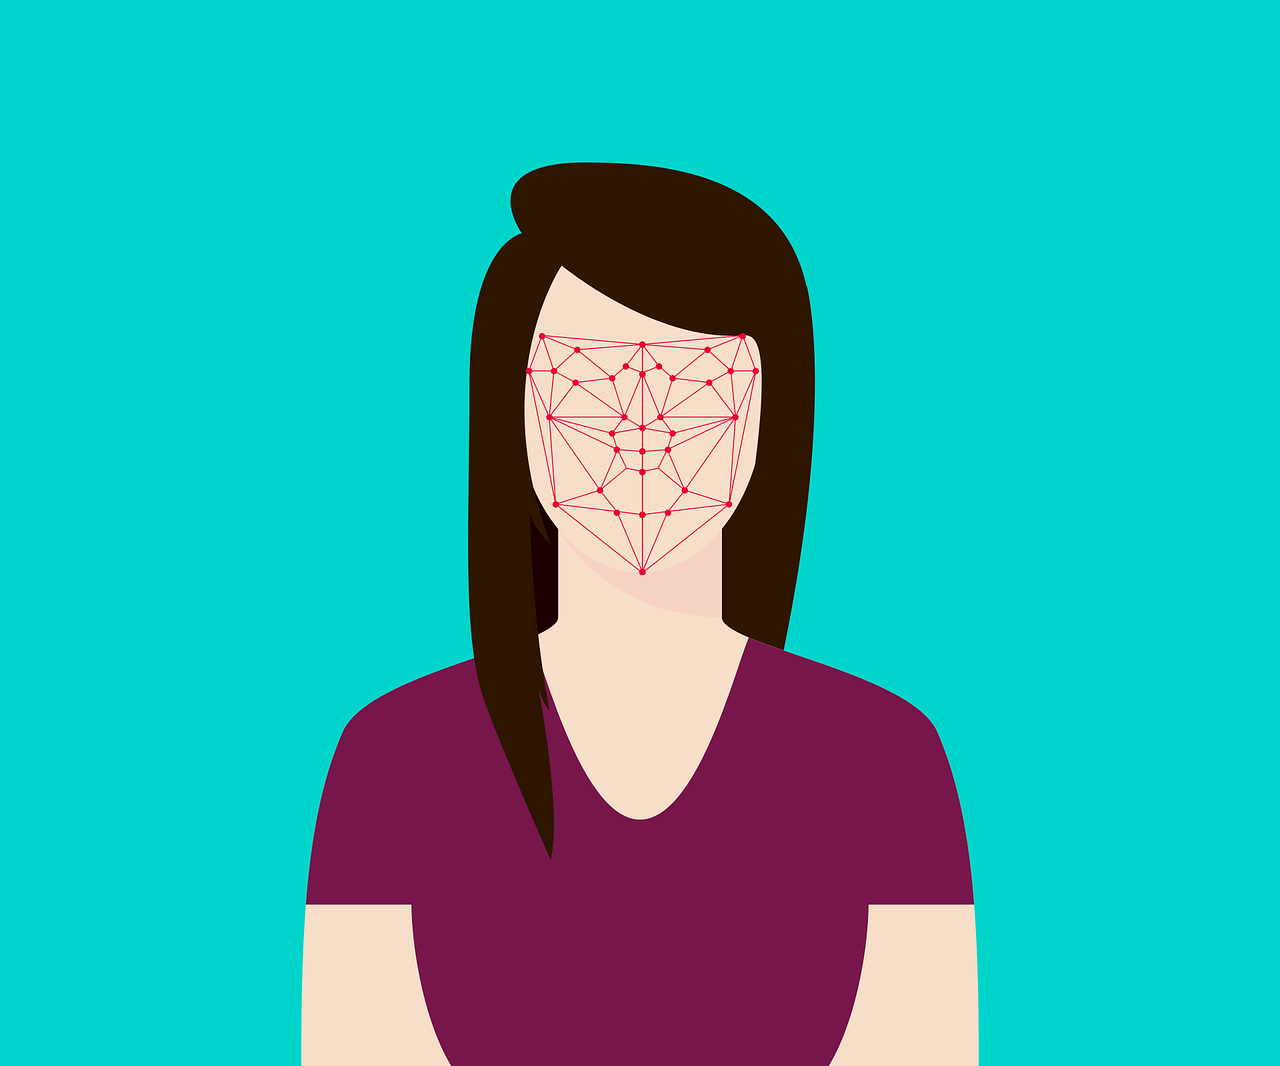 Microsoft Wants Laws That Limit The Use of Facial Recognition